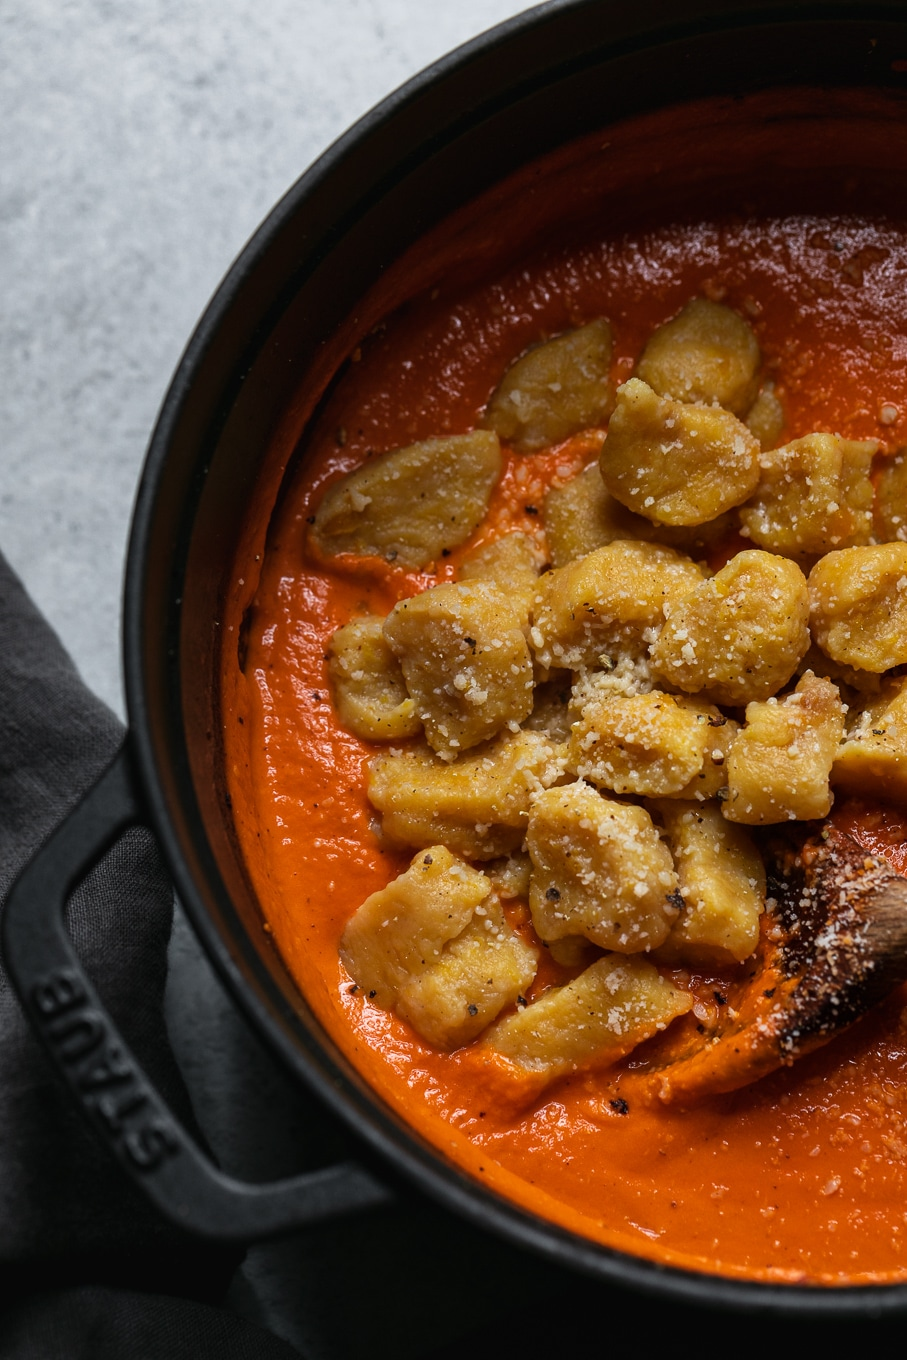 Overhead close up shot of a black dutch oven filled with vodka sauce and gnocchi about to be stirred with a wooden spoon